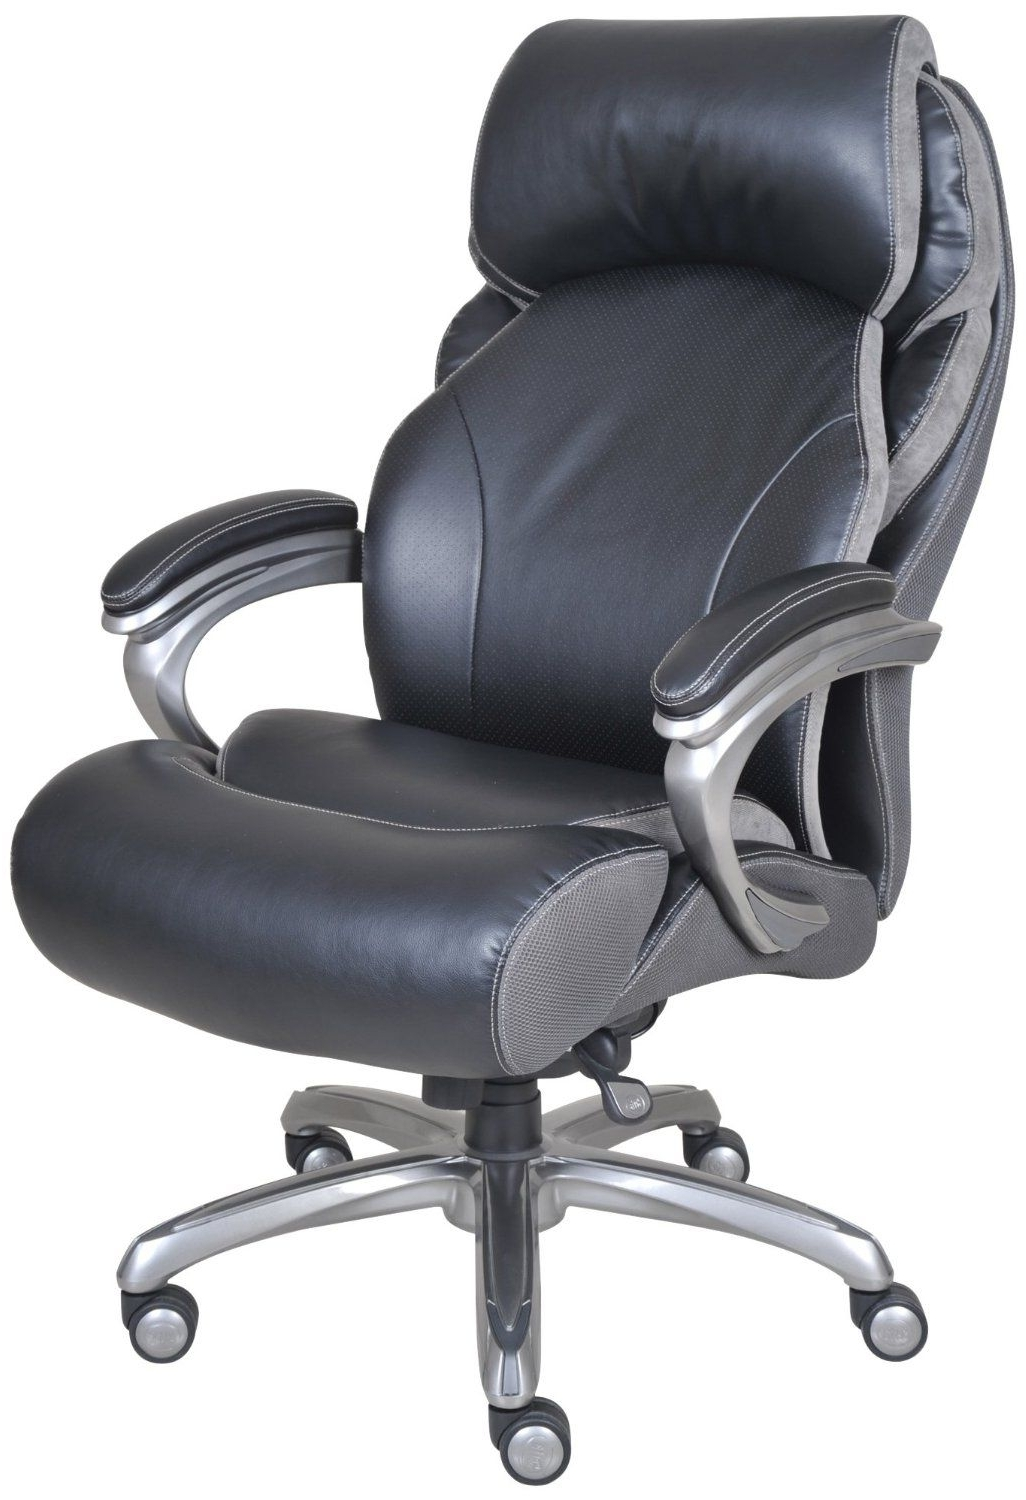 Http://productcreationlabs Intended For Xl Executive Office Chairs (View 2 of 20)